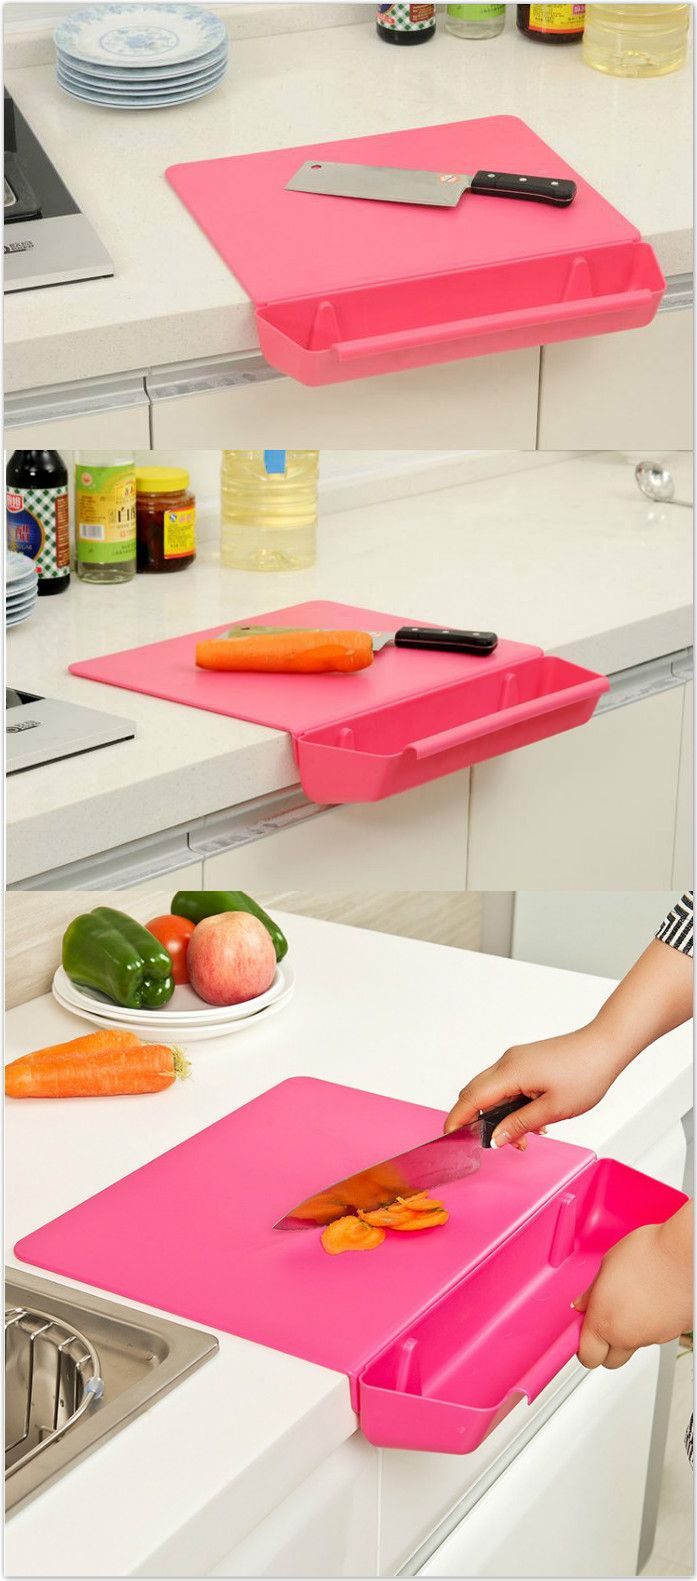 2-in-1 Creative Cutting Board with Detachable Storage Box. #kitchen_gadgets Home & Kitchen - Kitchen & Dining - kitchen decor - http://amzn.to/2leulul